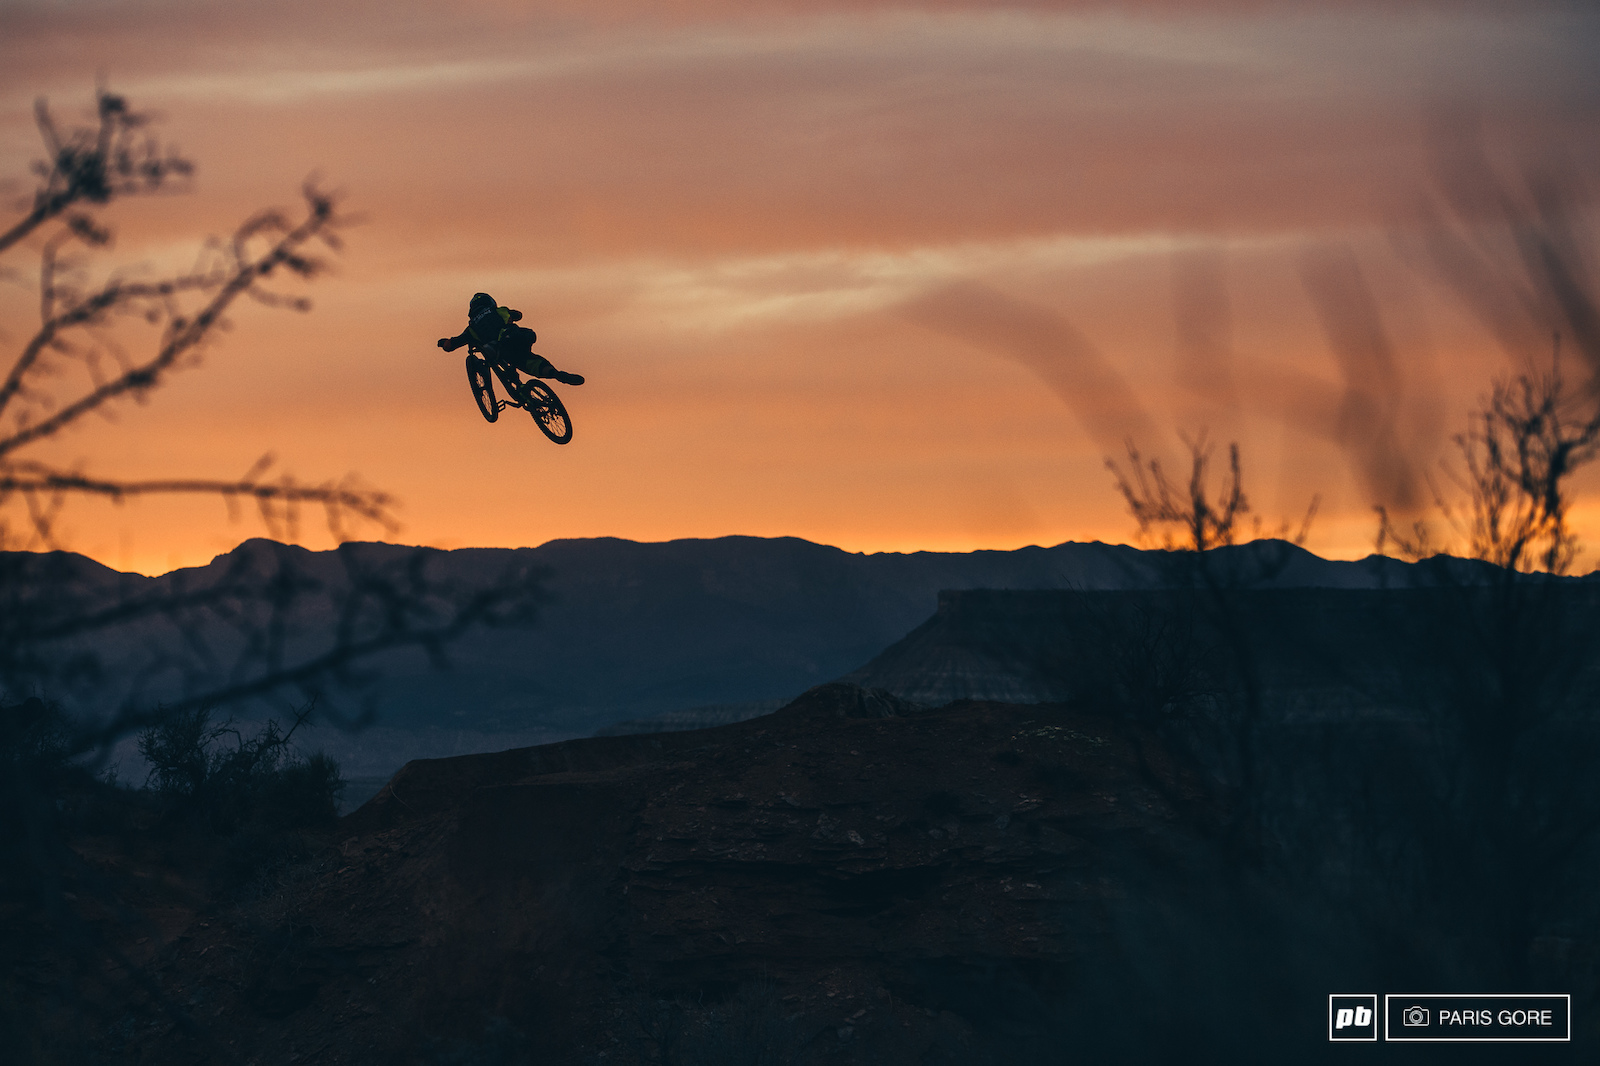 Tyler McCaul spent some time on his hip with Bearclaw this evening dialing in the lower end of their line.